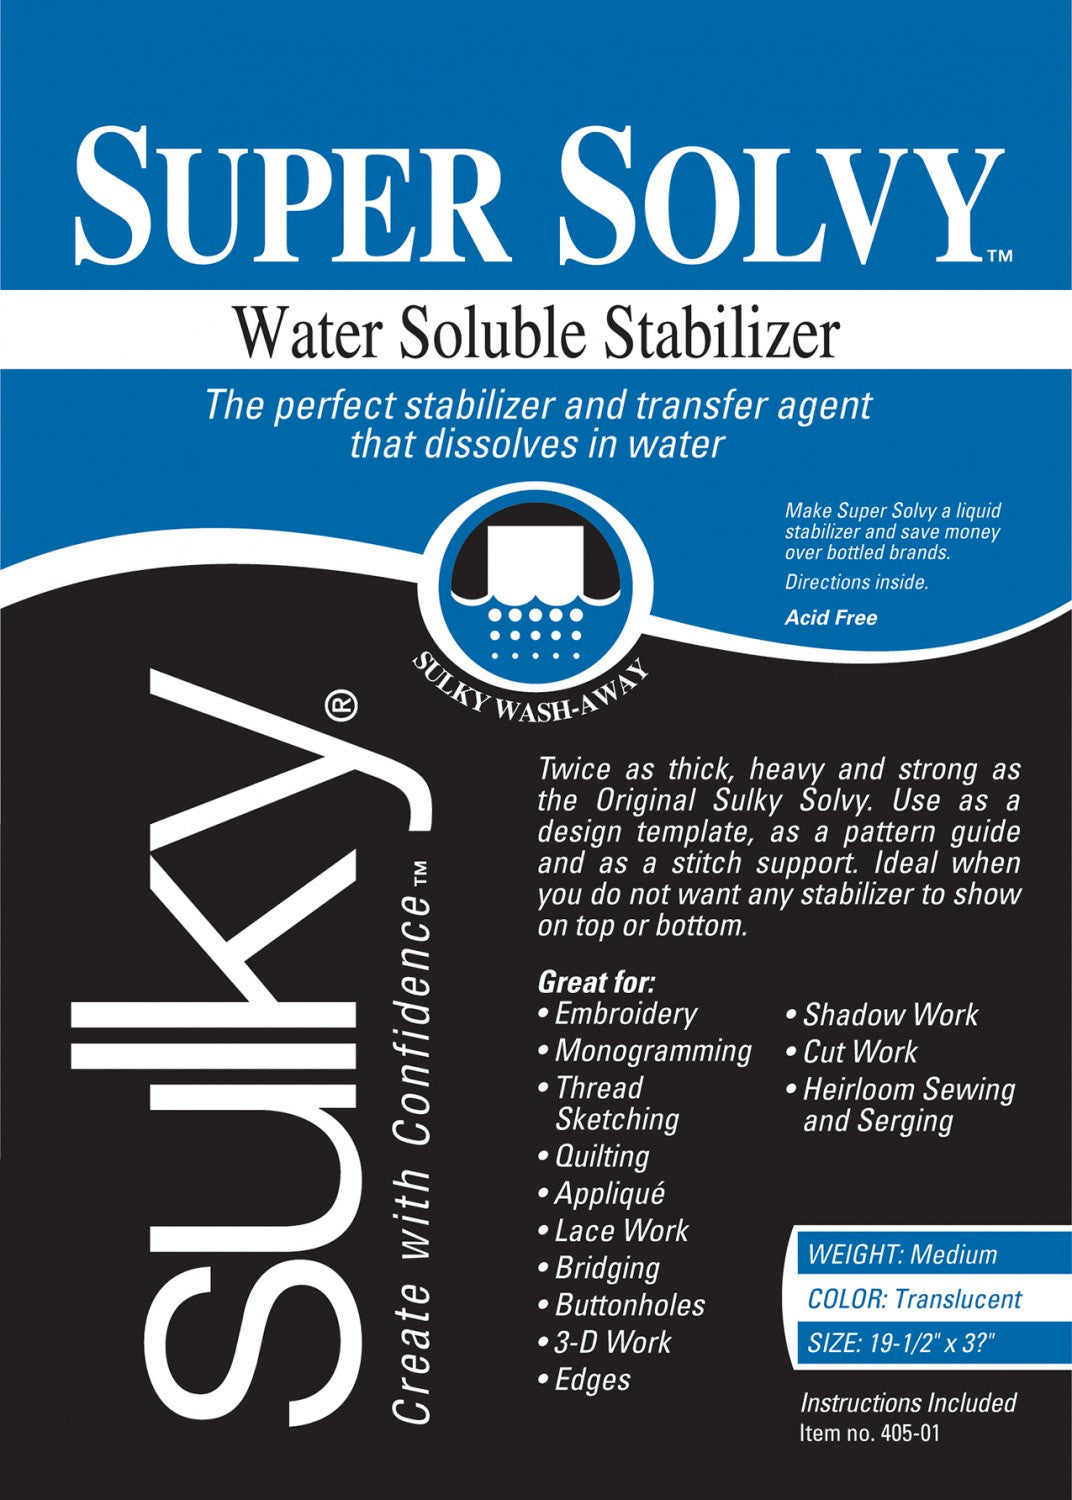 Super Solvy Water Soluable Stabilizer 20